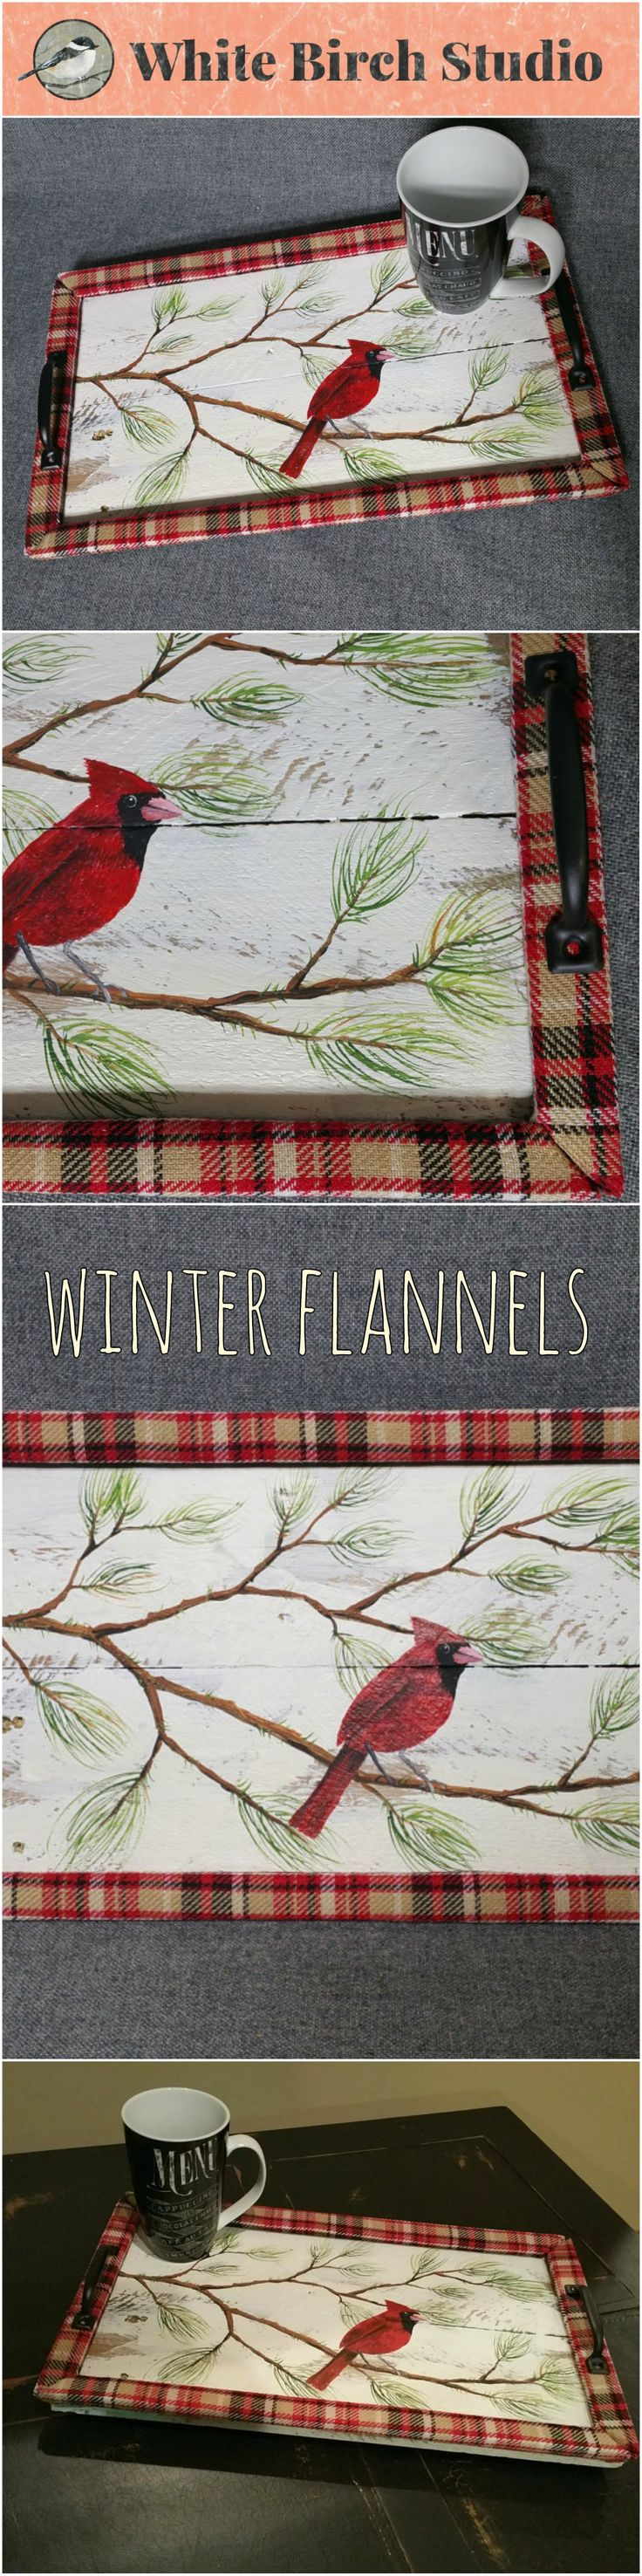 Decorative winter tray, Winter decor, Flannel plaid, Barn wood Serving Tray, table tray, distressed upcycled wood  This unique piece is 19 in x 11 in.   Are you looking for a unique, personal touch to your WINTER decor? This tray will look great on your coffee table with hand-painted evergreen branches and a cardinal. It has been sanded for a aged appearance. The tray edge is wrapped with plaid fabric for a unique look and flat black handles.